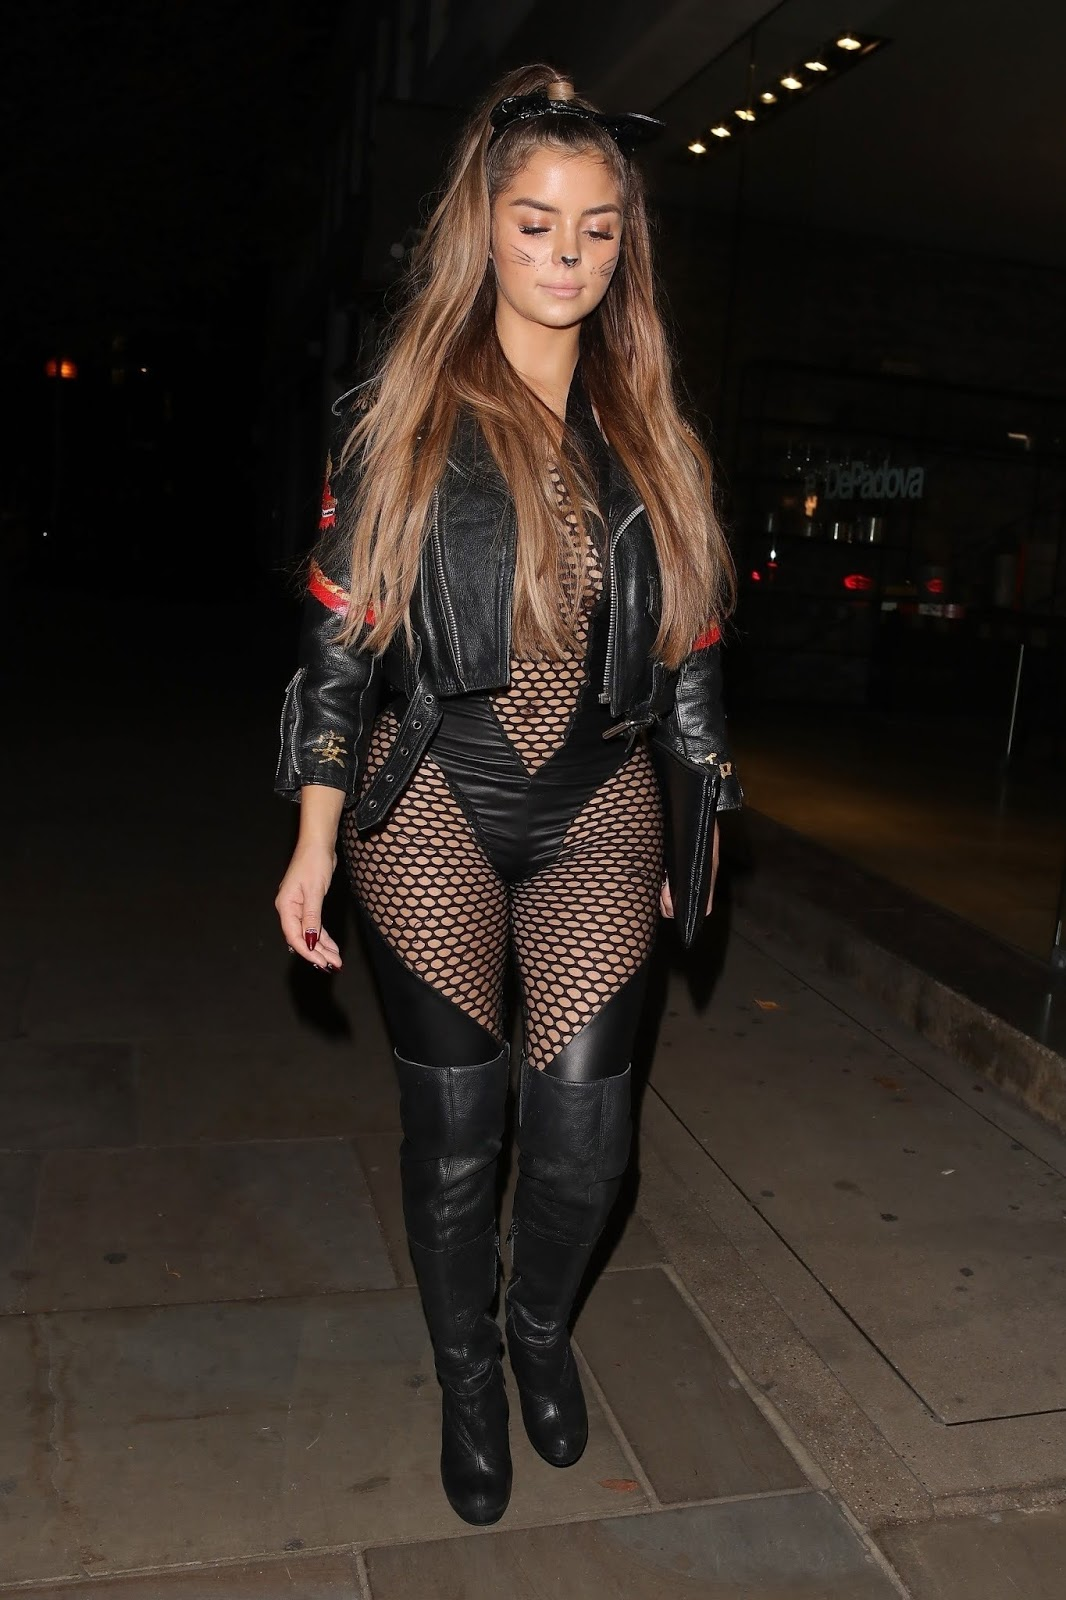 Demi Rose – a Halloween party at Ours in London 10/27/18